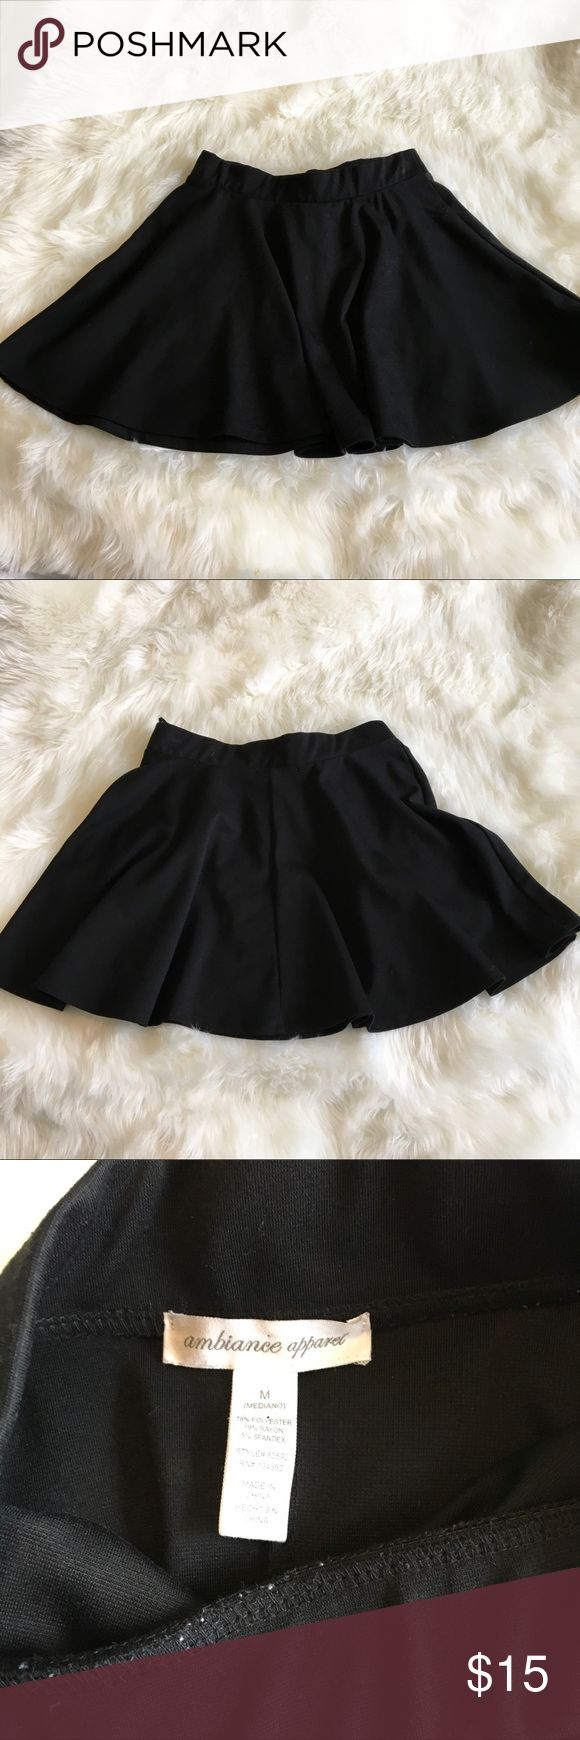 Black circle skirt by ambiance apparel size m Size medium black circle skirt by ambiance apparel, used. Good condition Ambiance Apparel Skirts Circle & Skater